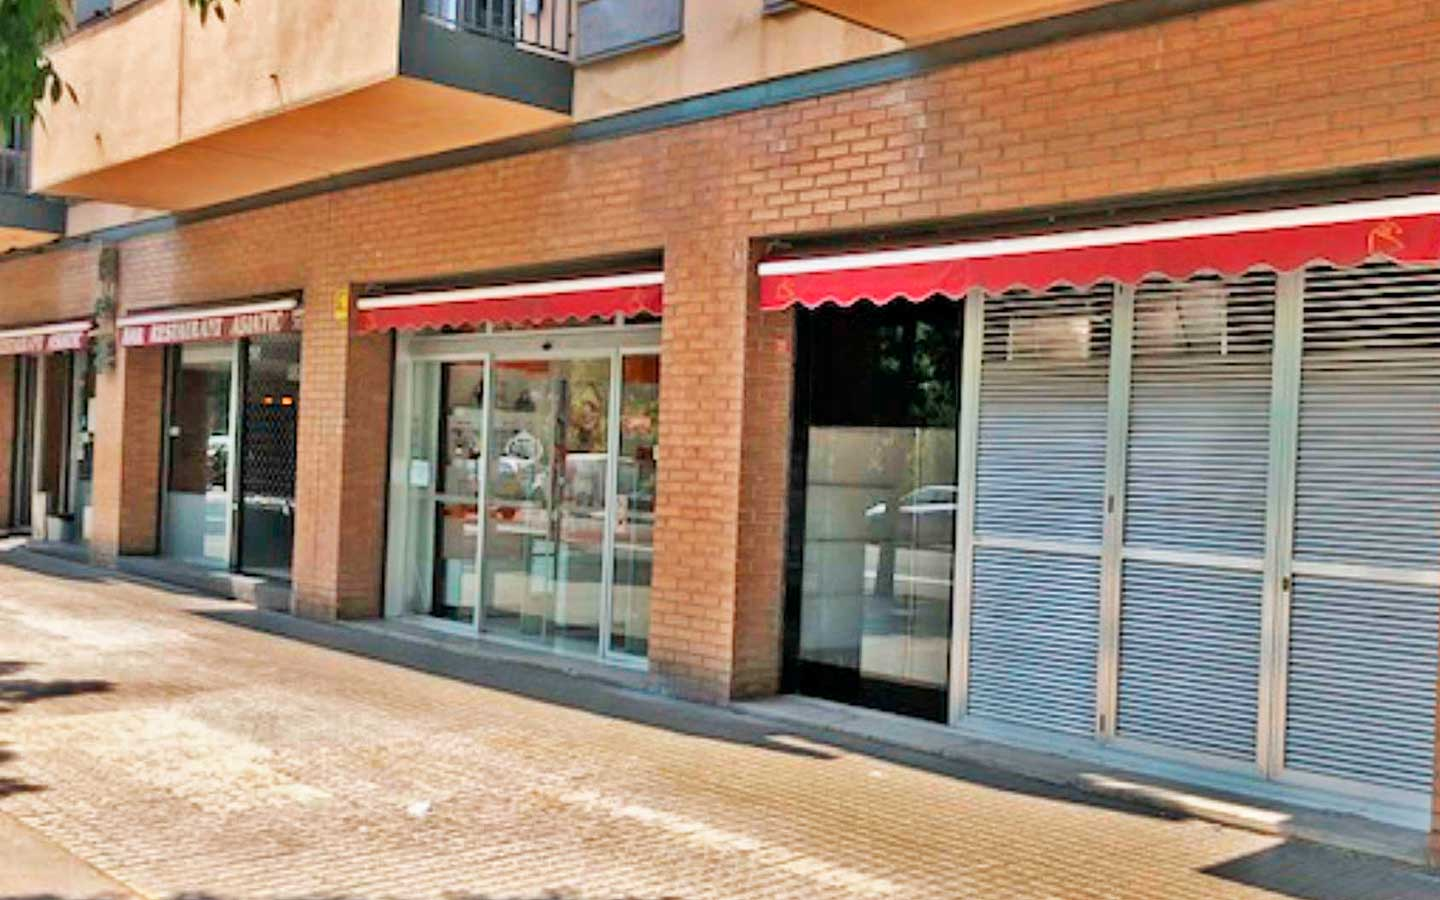 Local en venta en rentabilidad en Diagonal-Mar en Barcelona